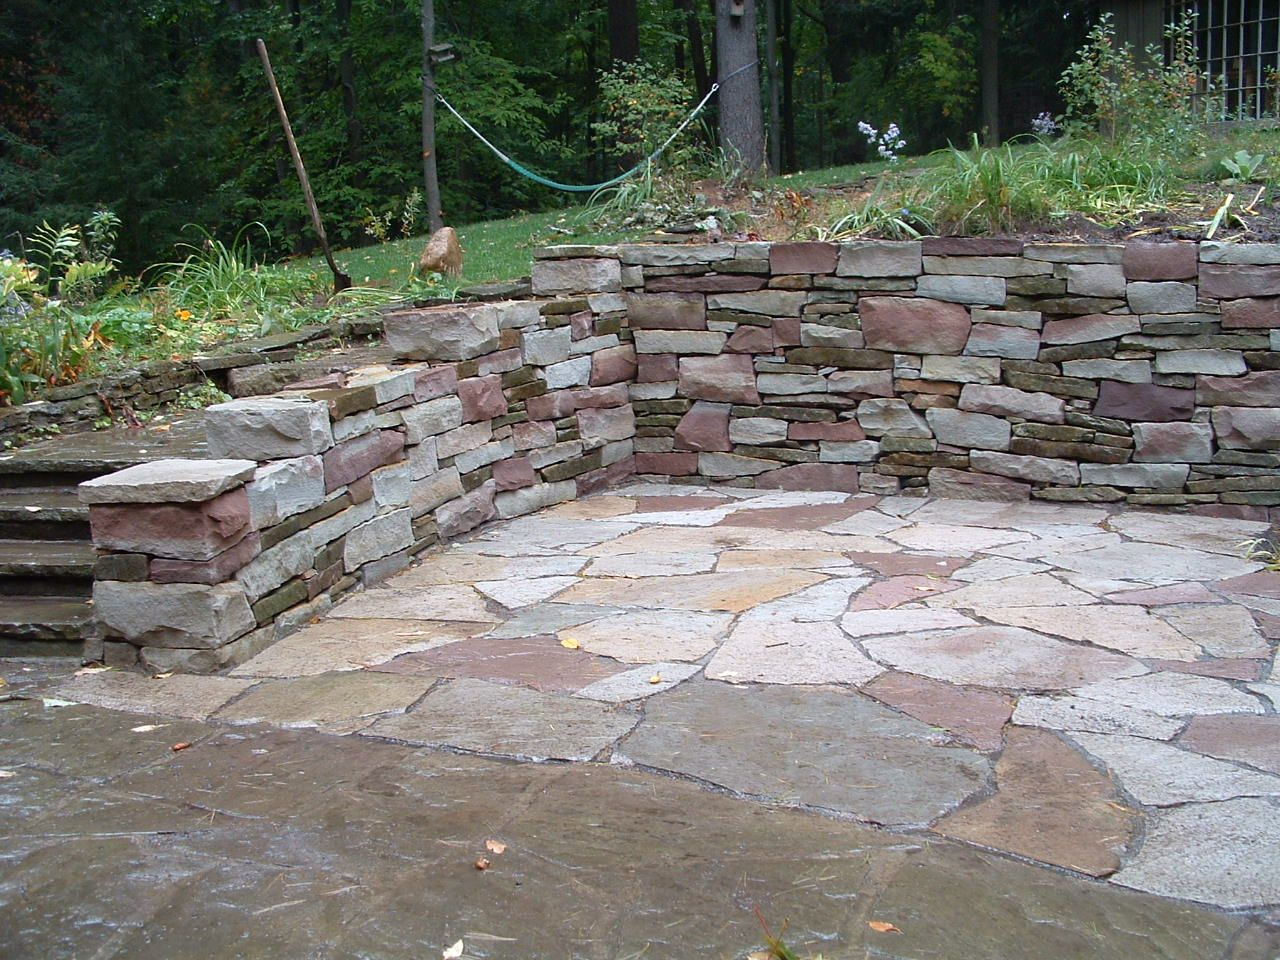 Brick Patio Wall Designs epic patio walls ideas with small home interior ideas with patio walls ideas Patio Designs Among Retaining Walls Matched With Stone Flooring